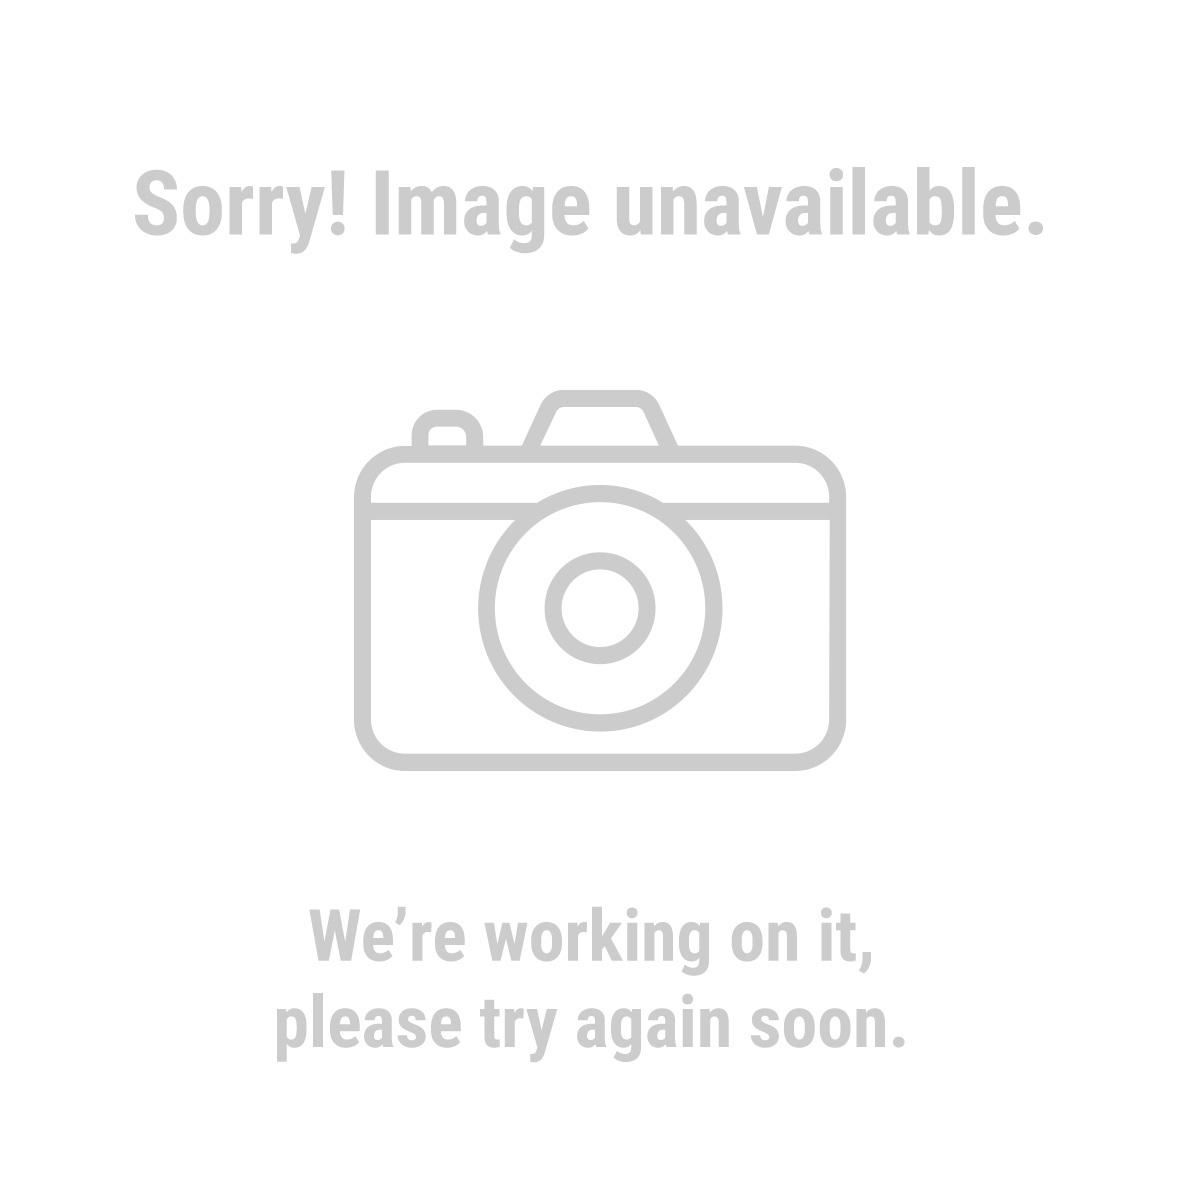 Storehouse 67682 315 Piece Roll Pin Assortment